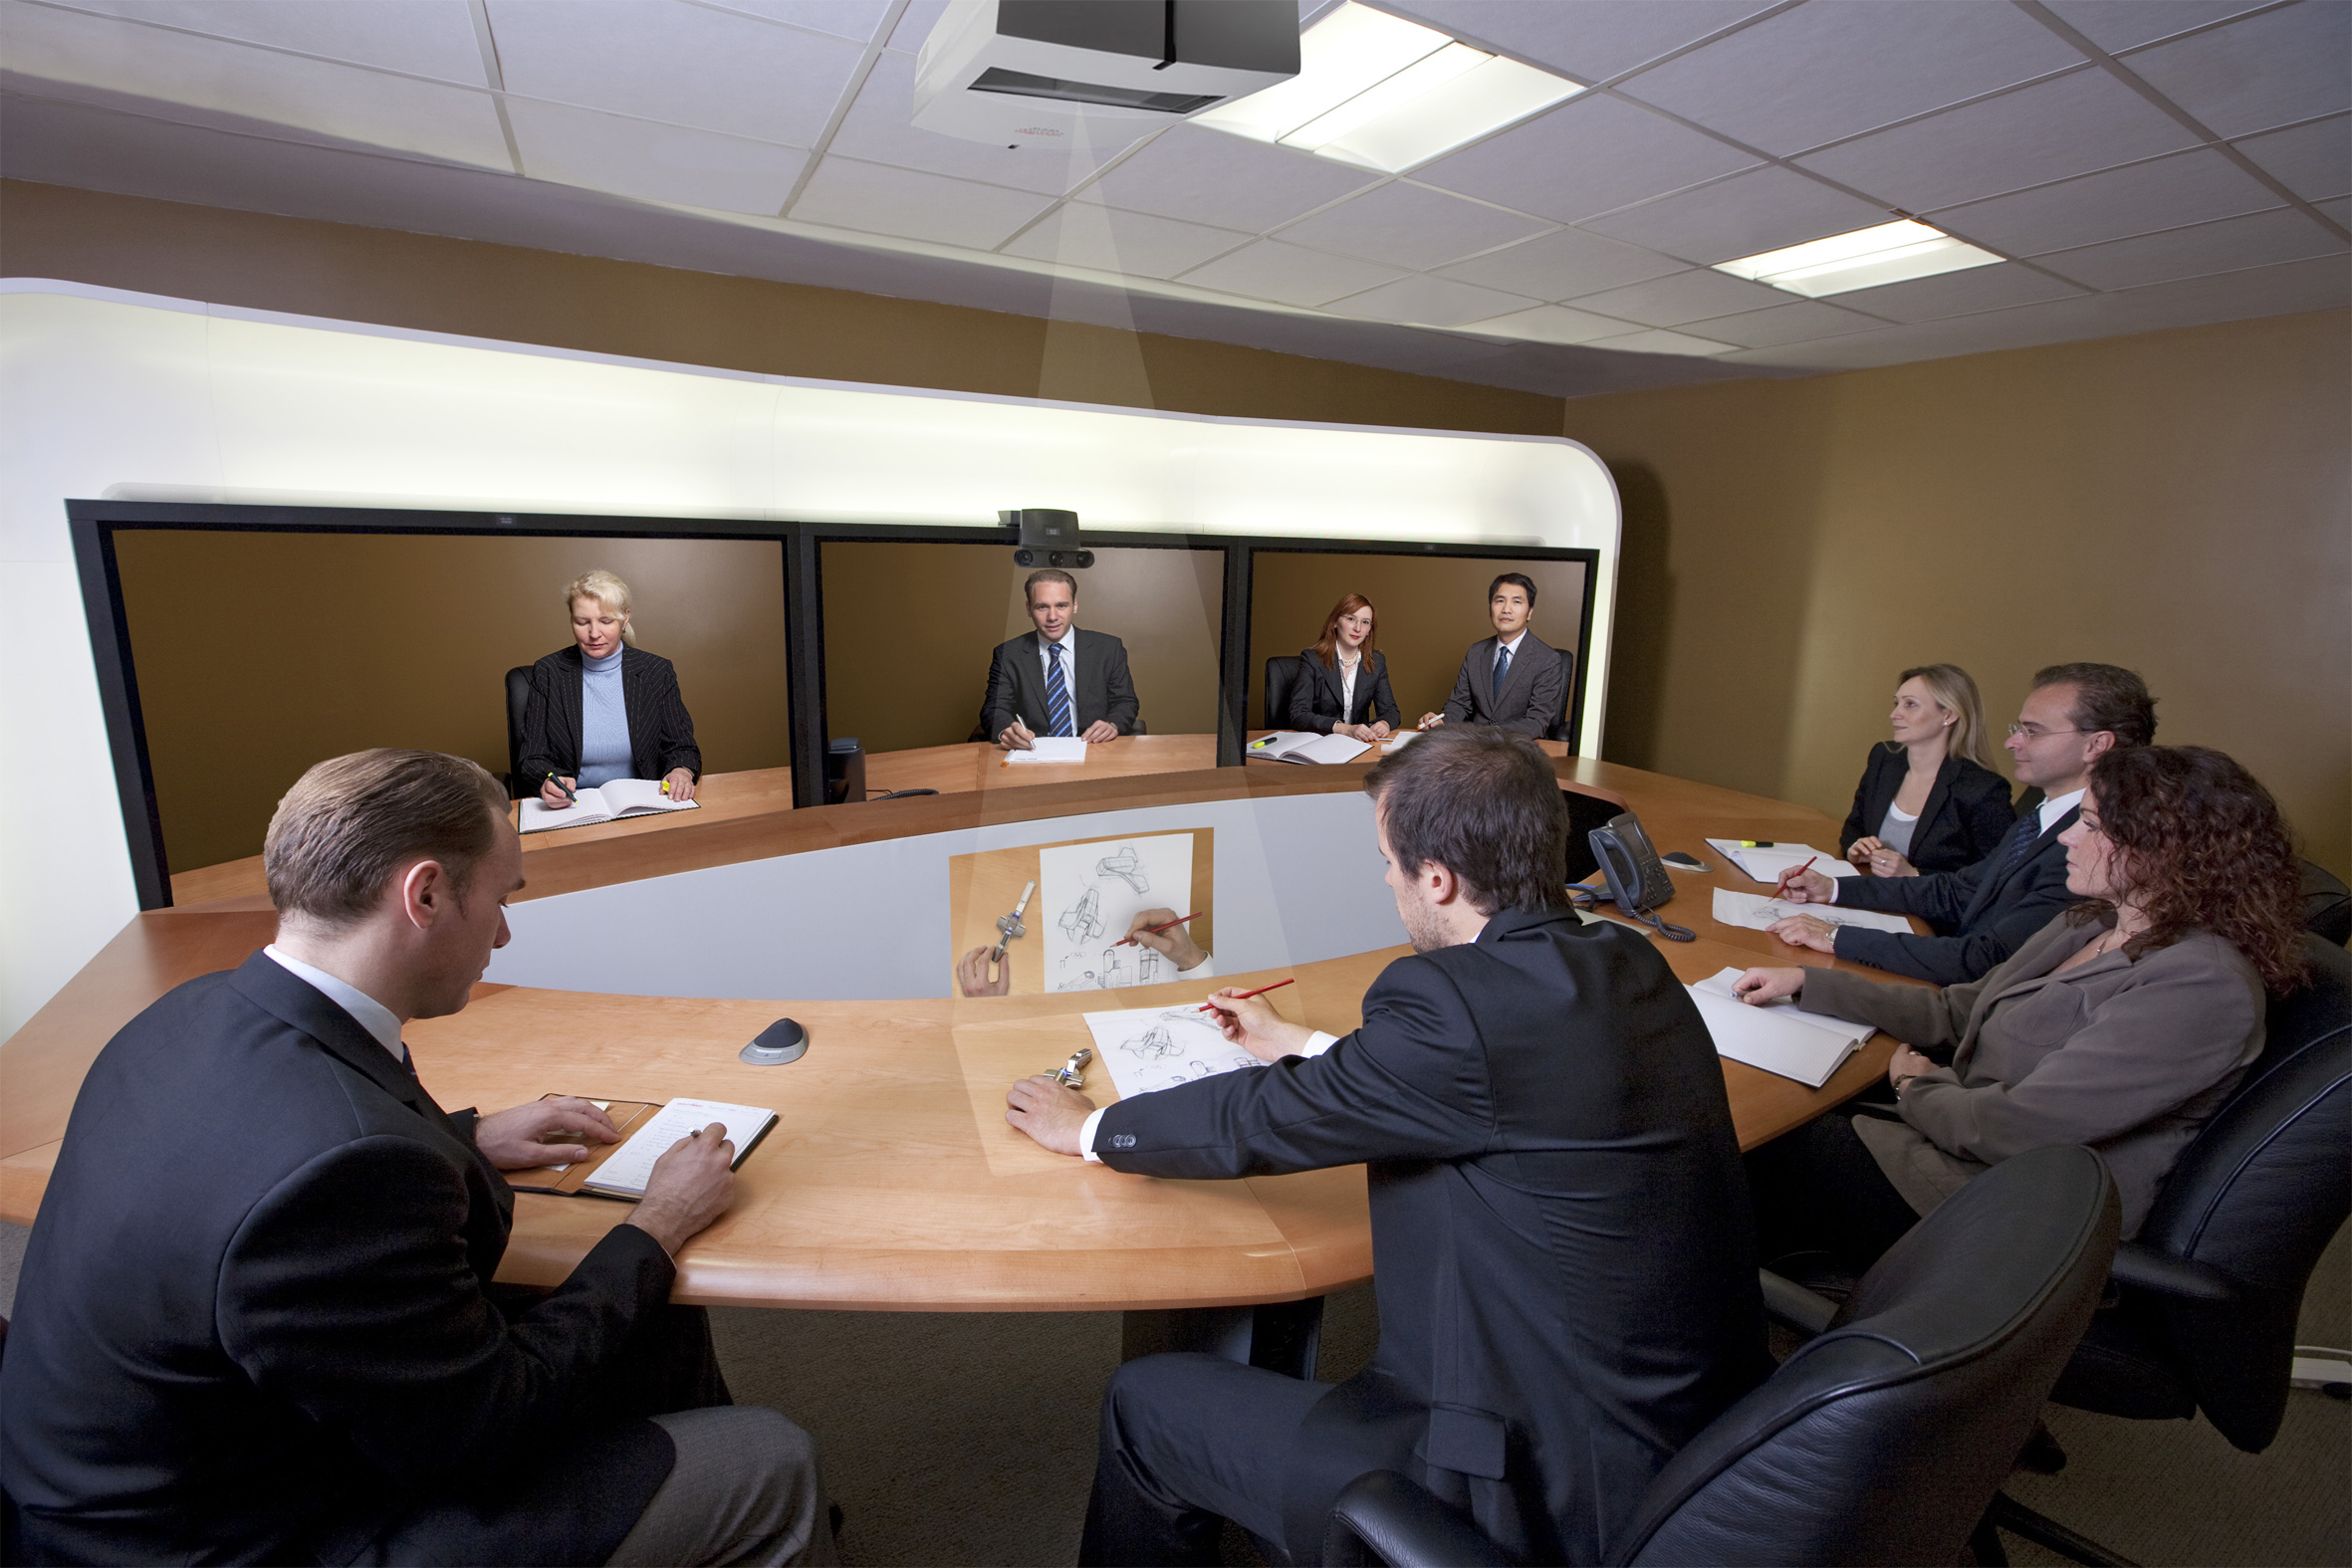 App03_telepresence_01_with_light